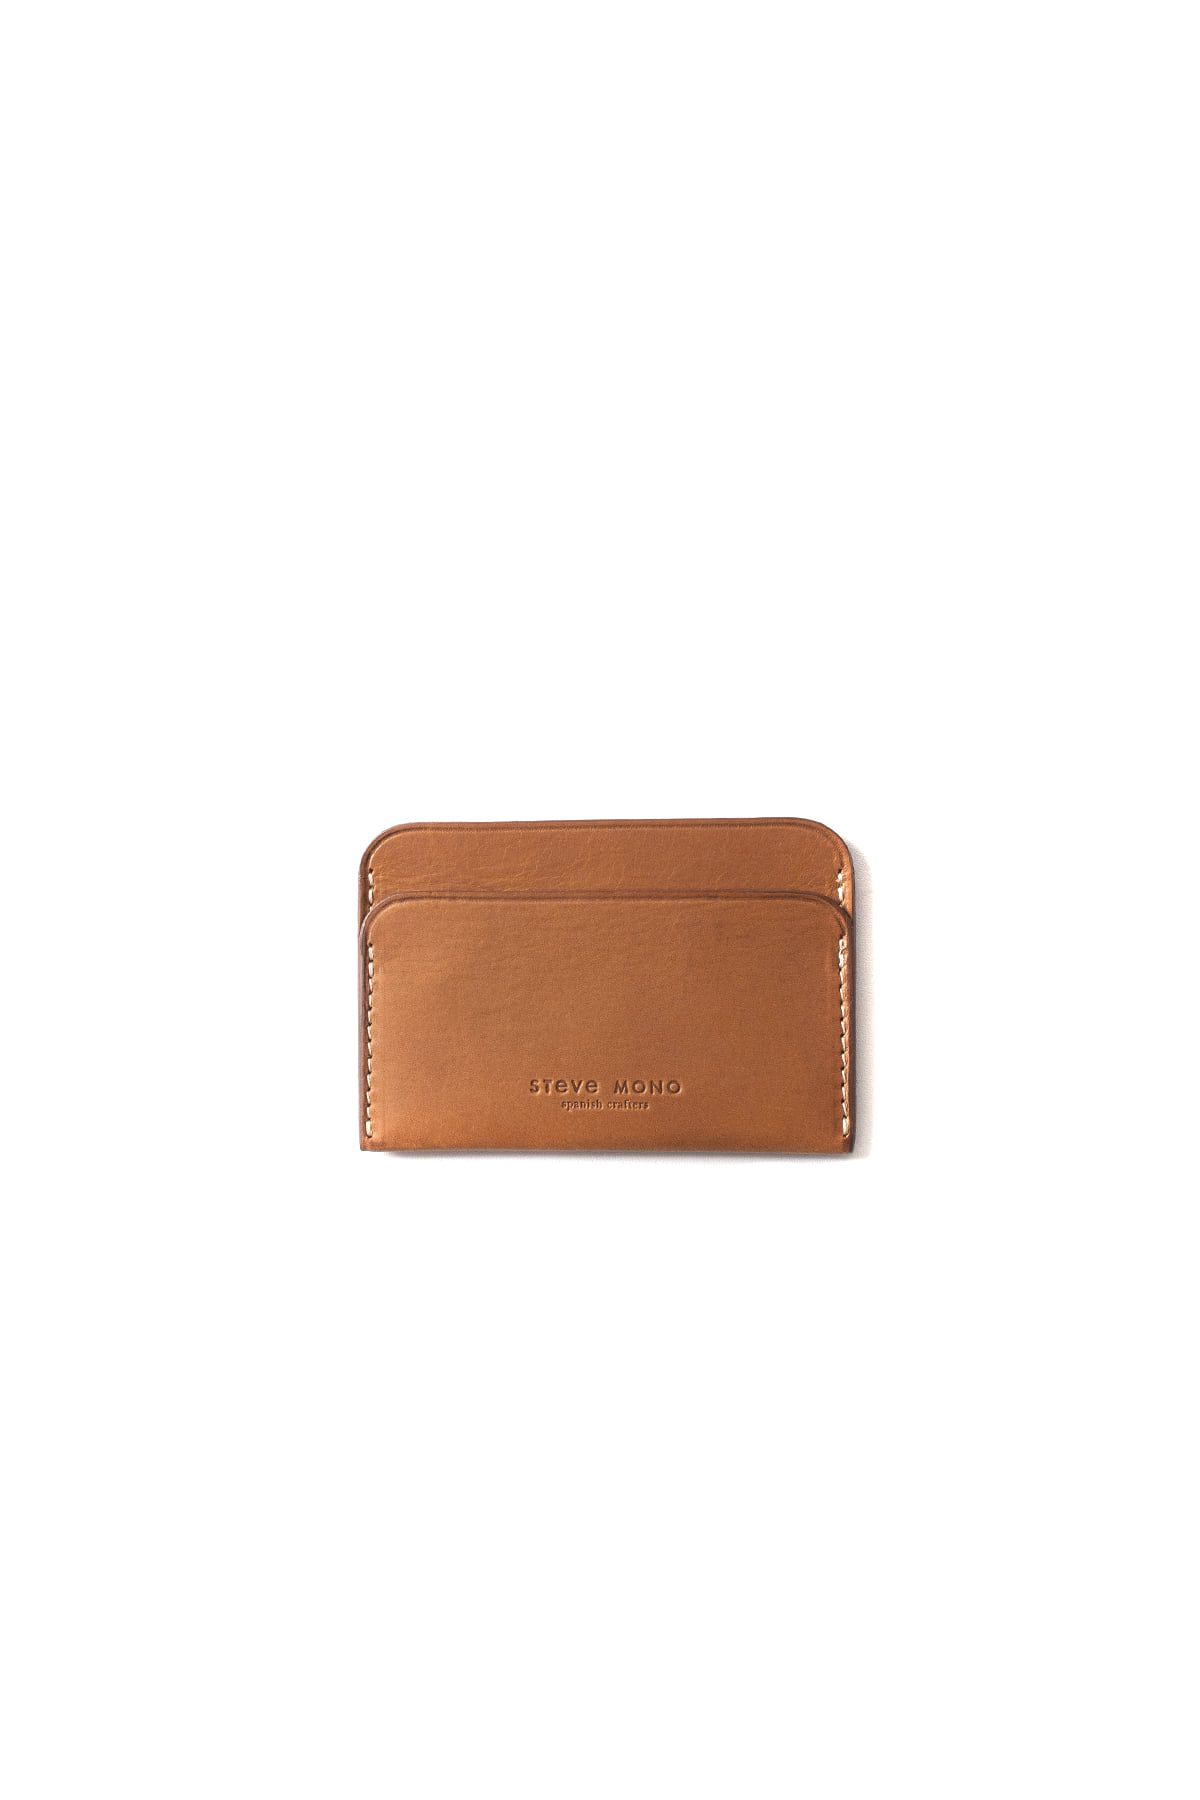 STEVE MONO : 09/8 Classic Cards Holder (Brown)